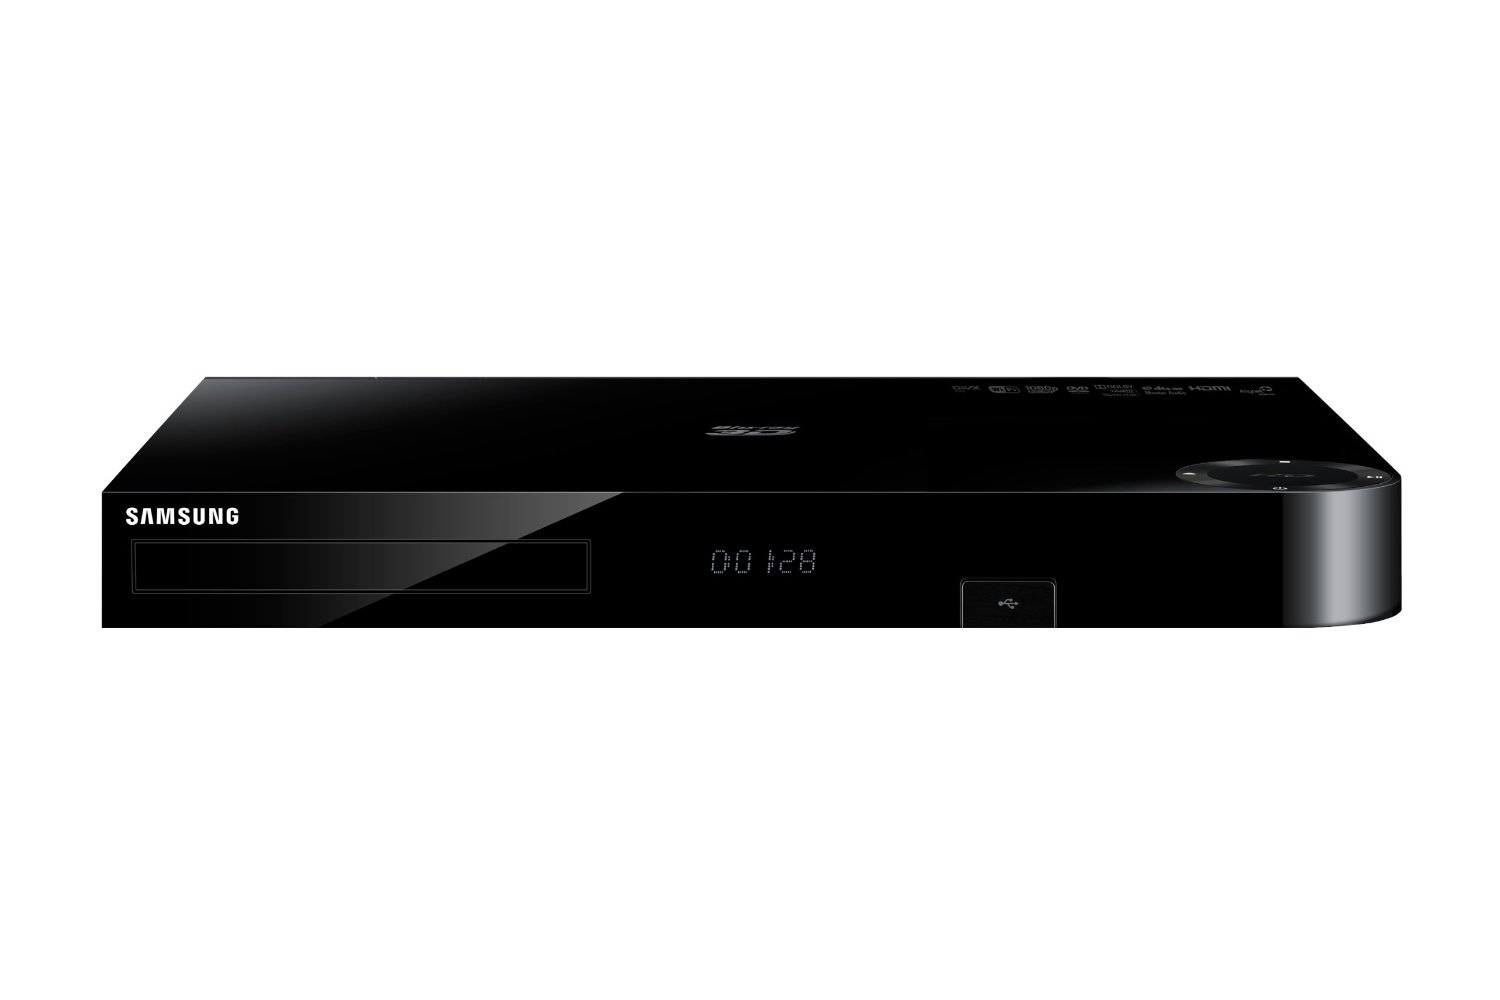 samsung bd h8509s im test der hd receiver mit twin tuner und 3d blu ray player. Black Bedroom Furniture Sets. Home Design Ideas